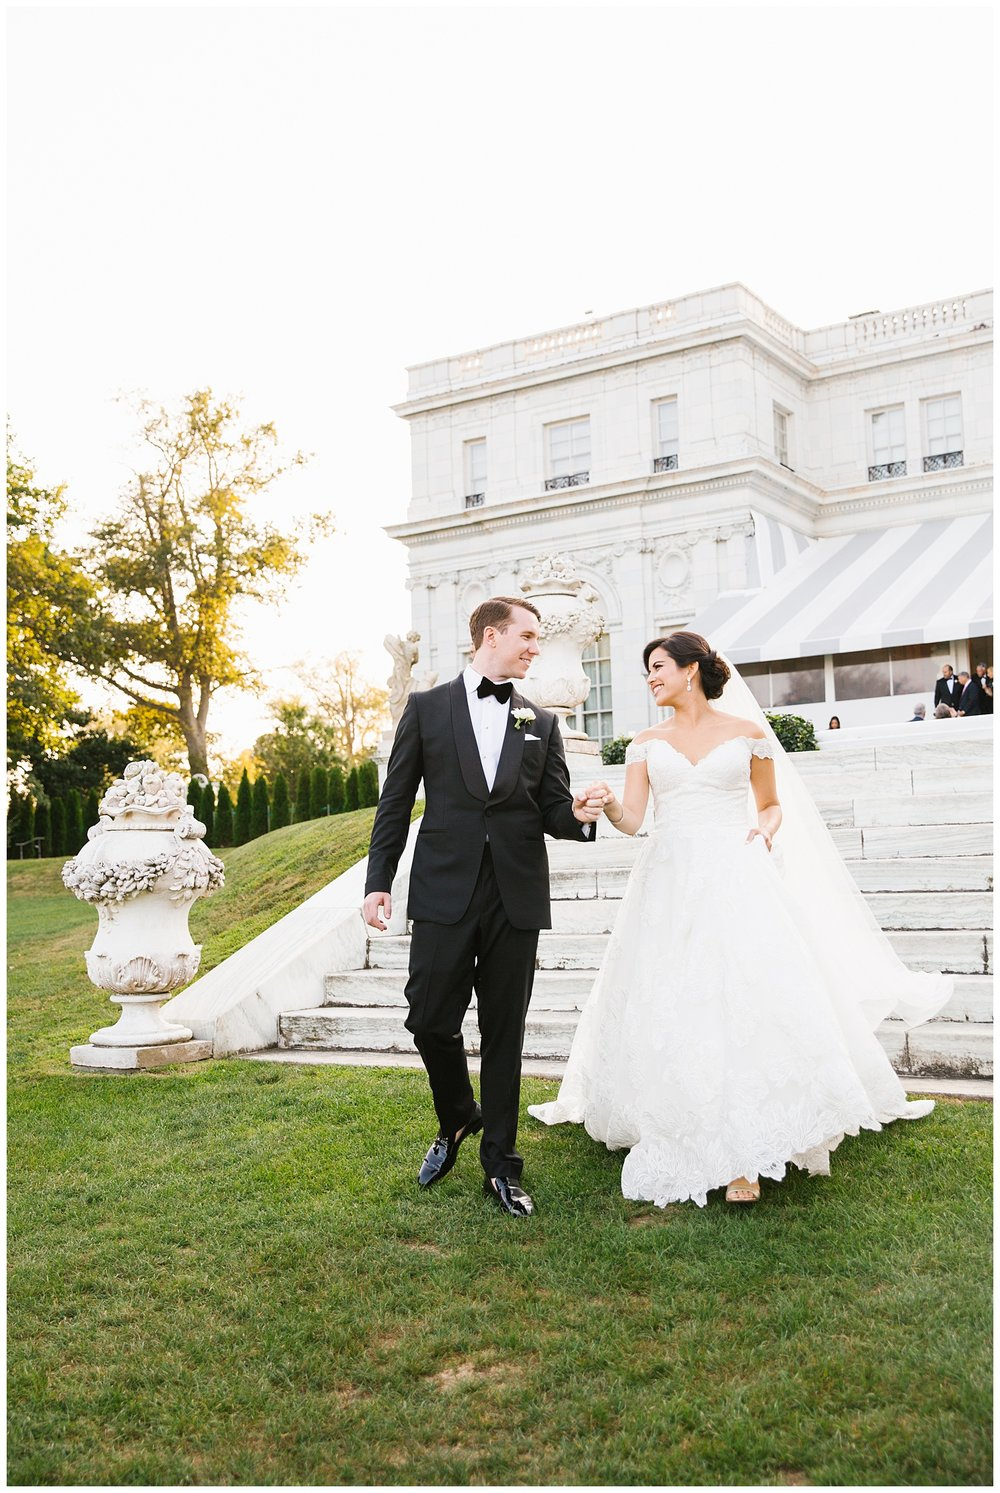 Stephen_Nathalie_Rosecliff_Mansion_Wedding_021.jpeg